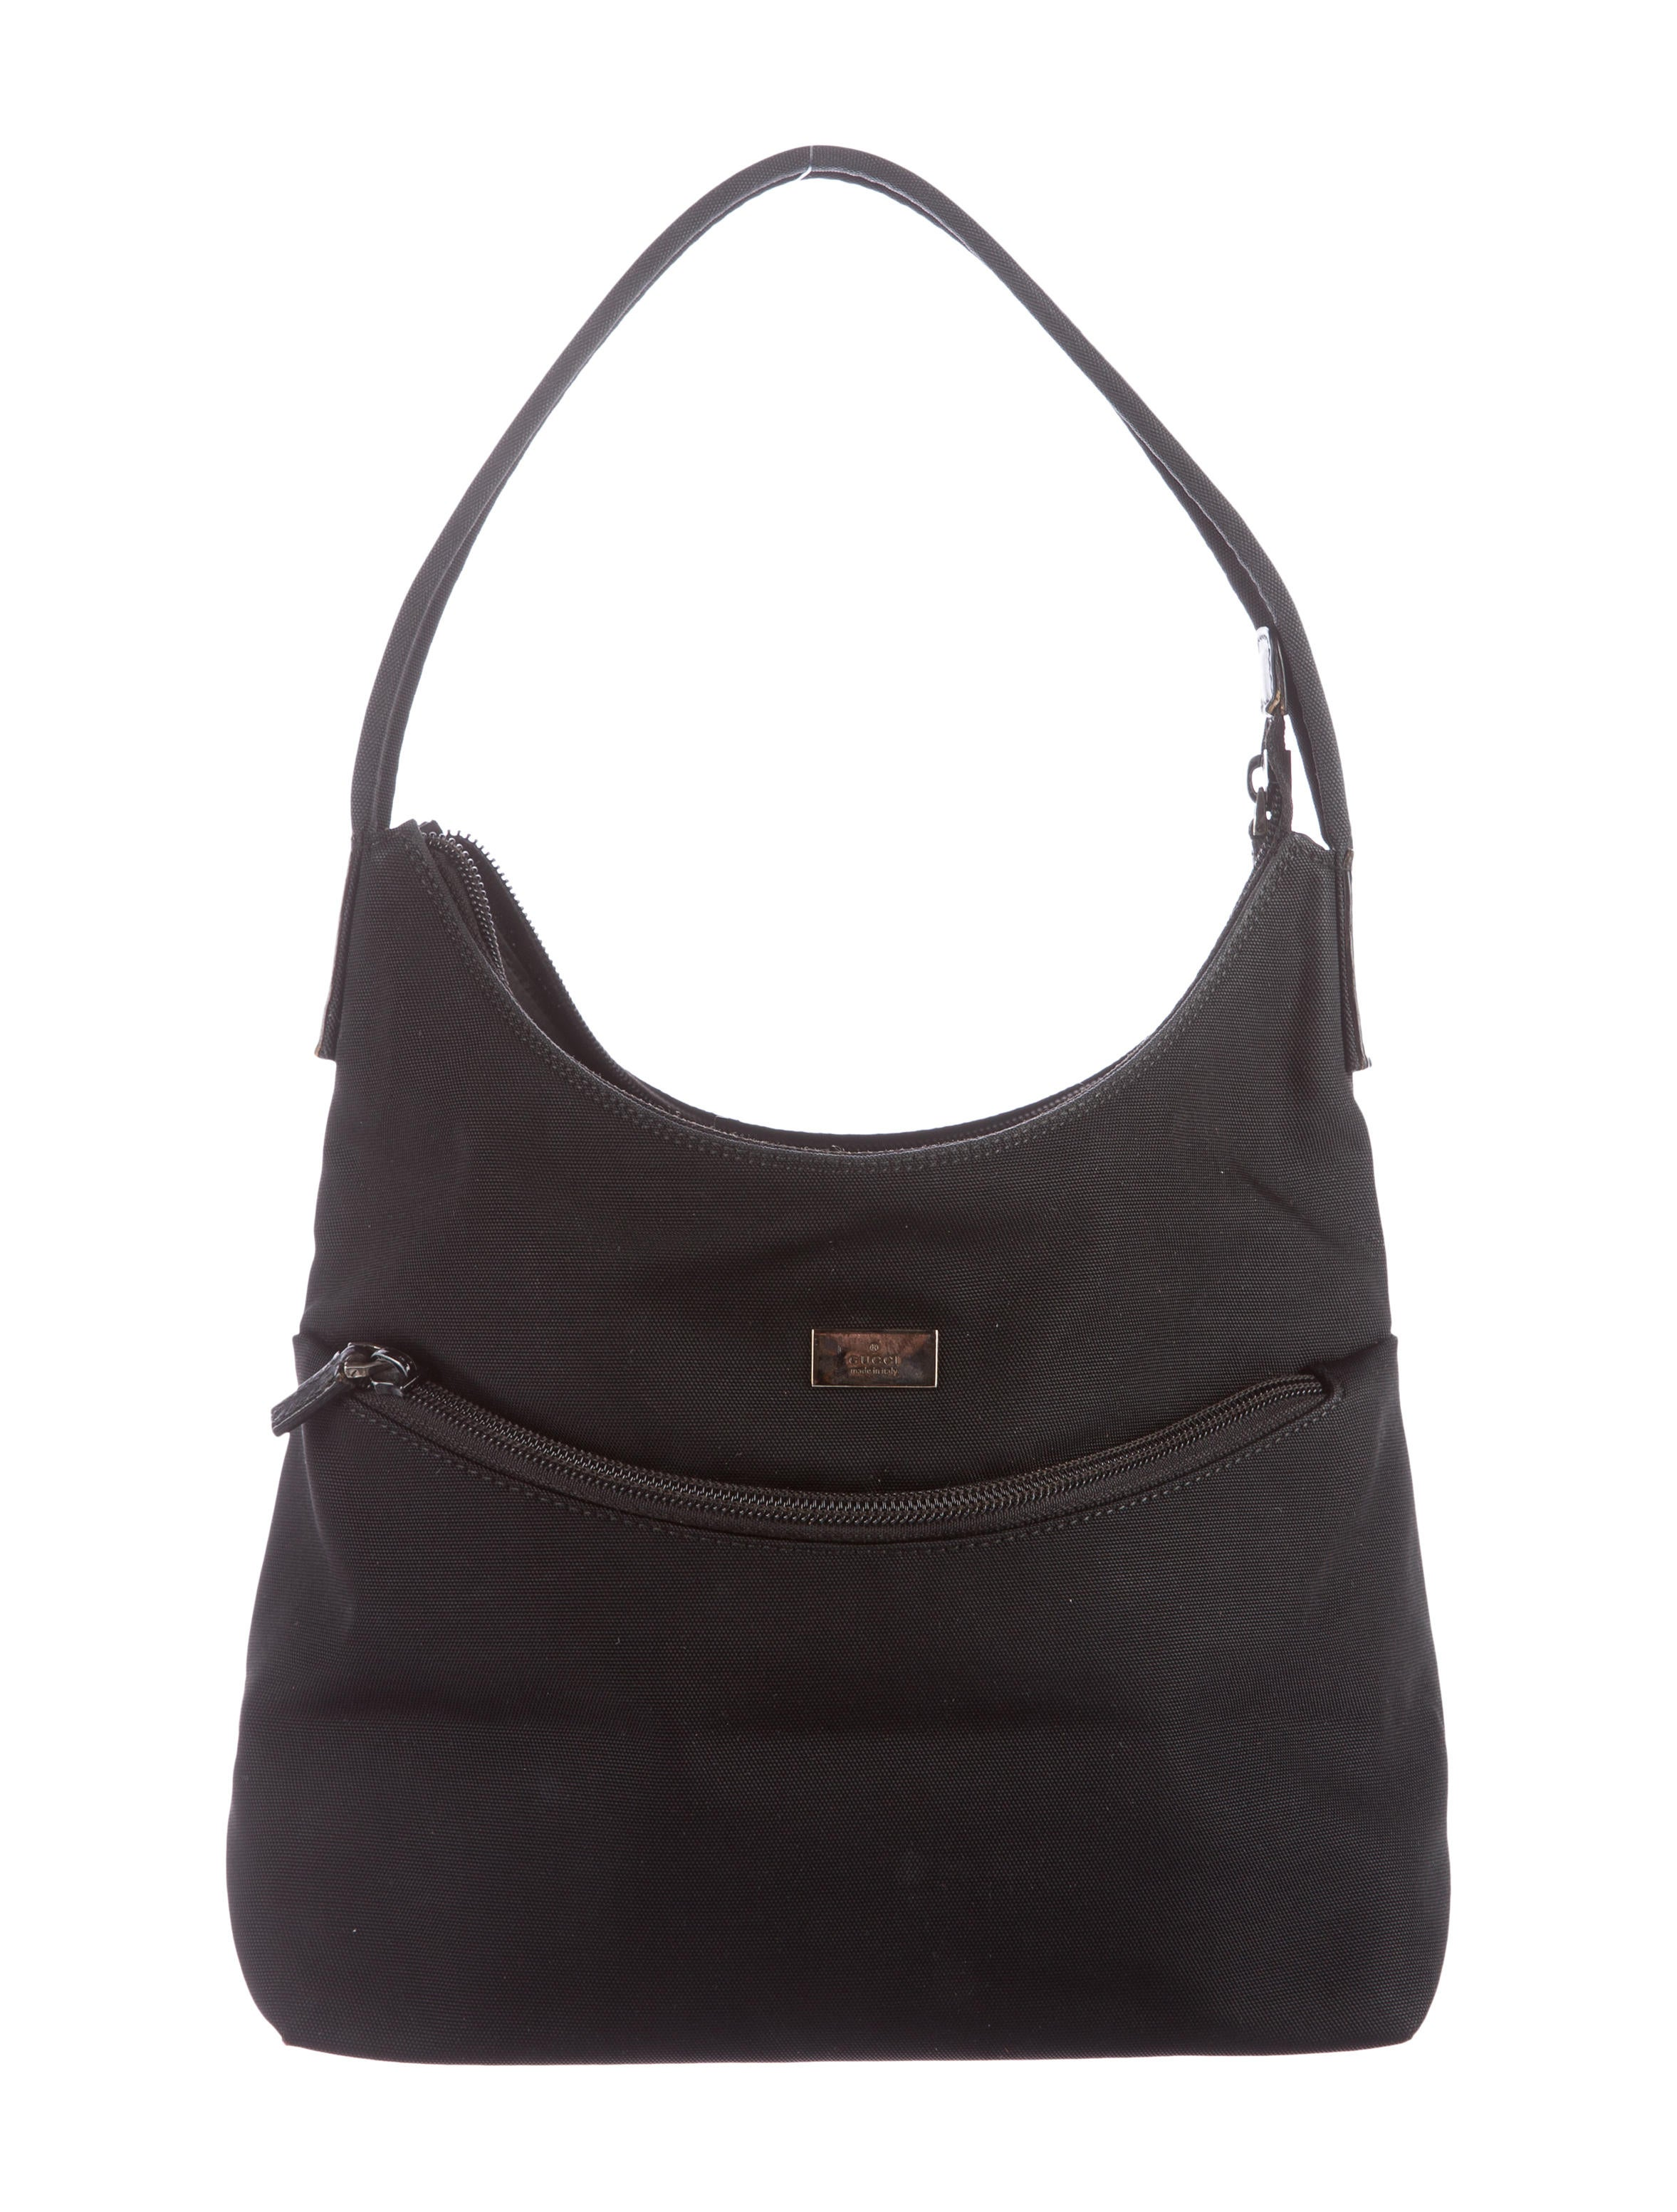 Dooney & Bourke Nylon Hobo Handbag- Juliette is rated out of 5 by Rated 1 out of 5 by Lyndyl from Worst Dooney Bag I Ever Owned Unhinged easily. Hardware tarnished/5.